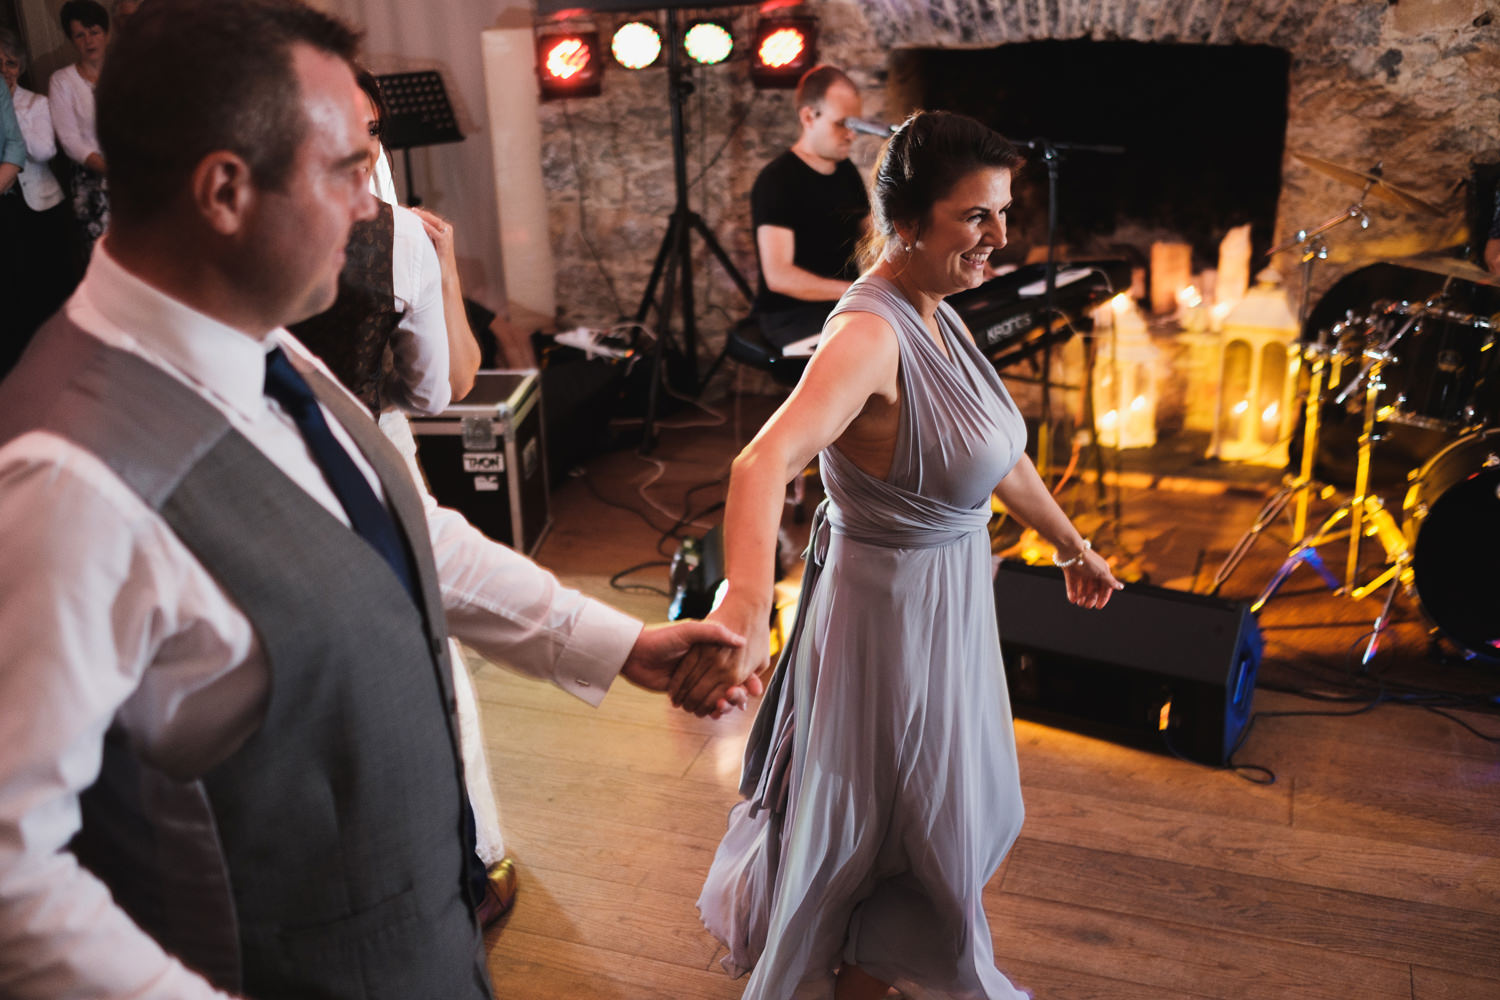 first wedding dance by david mcclelland